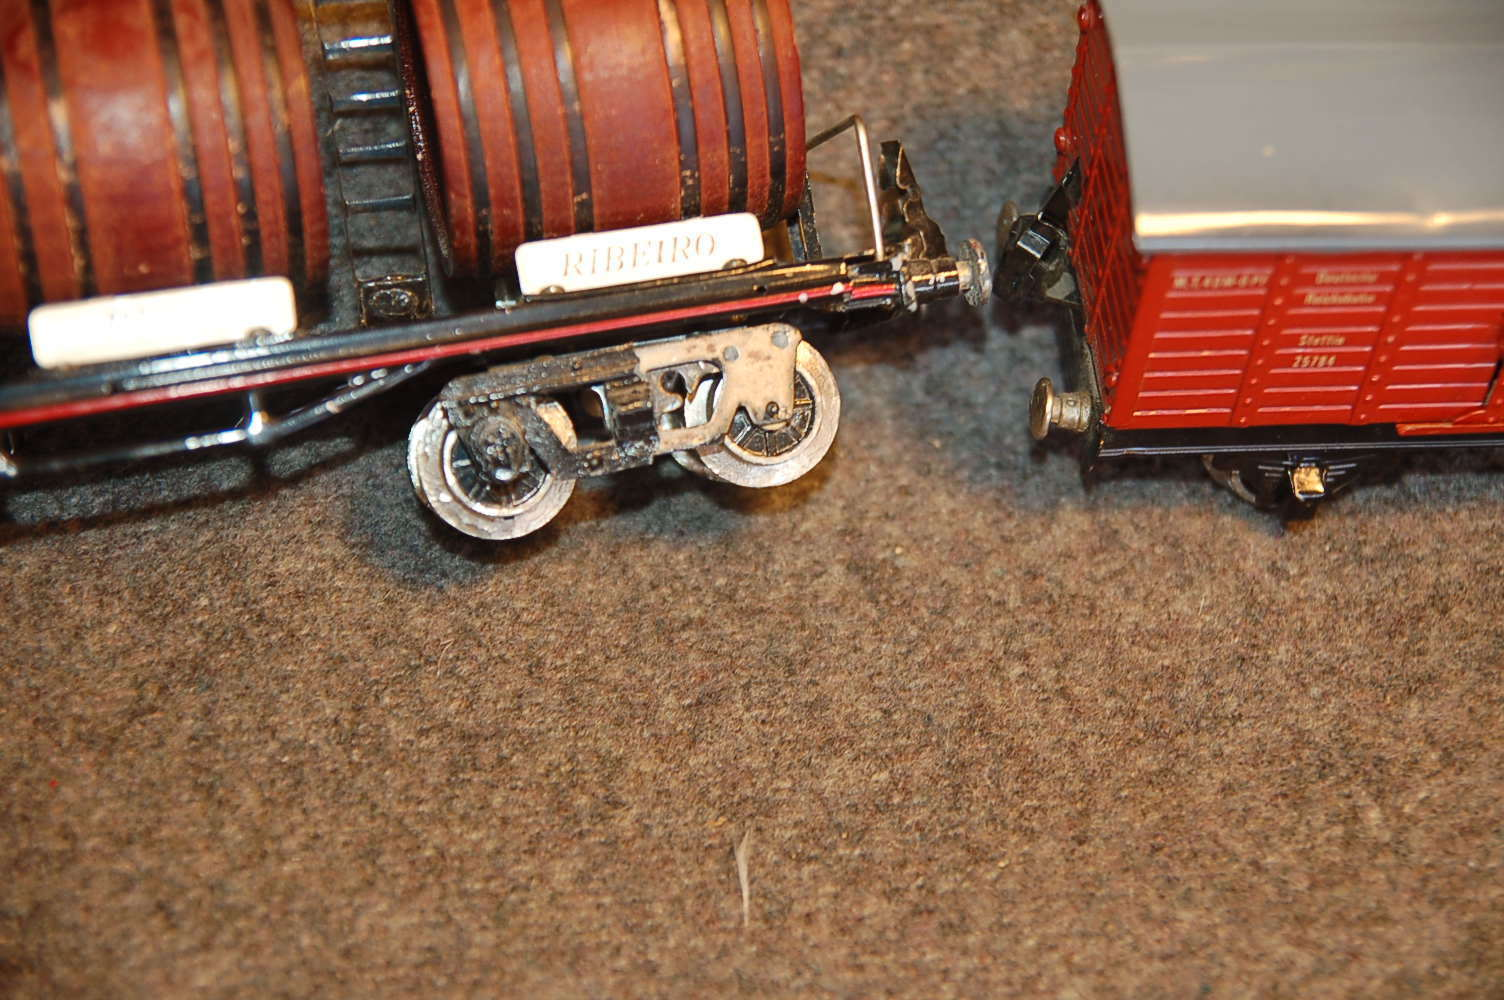 2 Paya O Gauge freight or train cars wagons , appear quite old